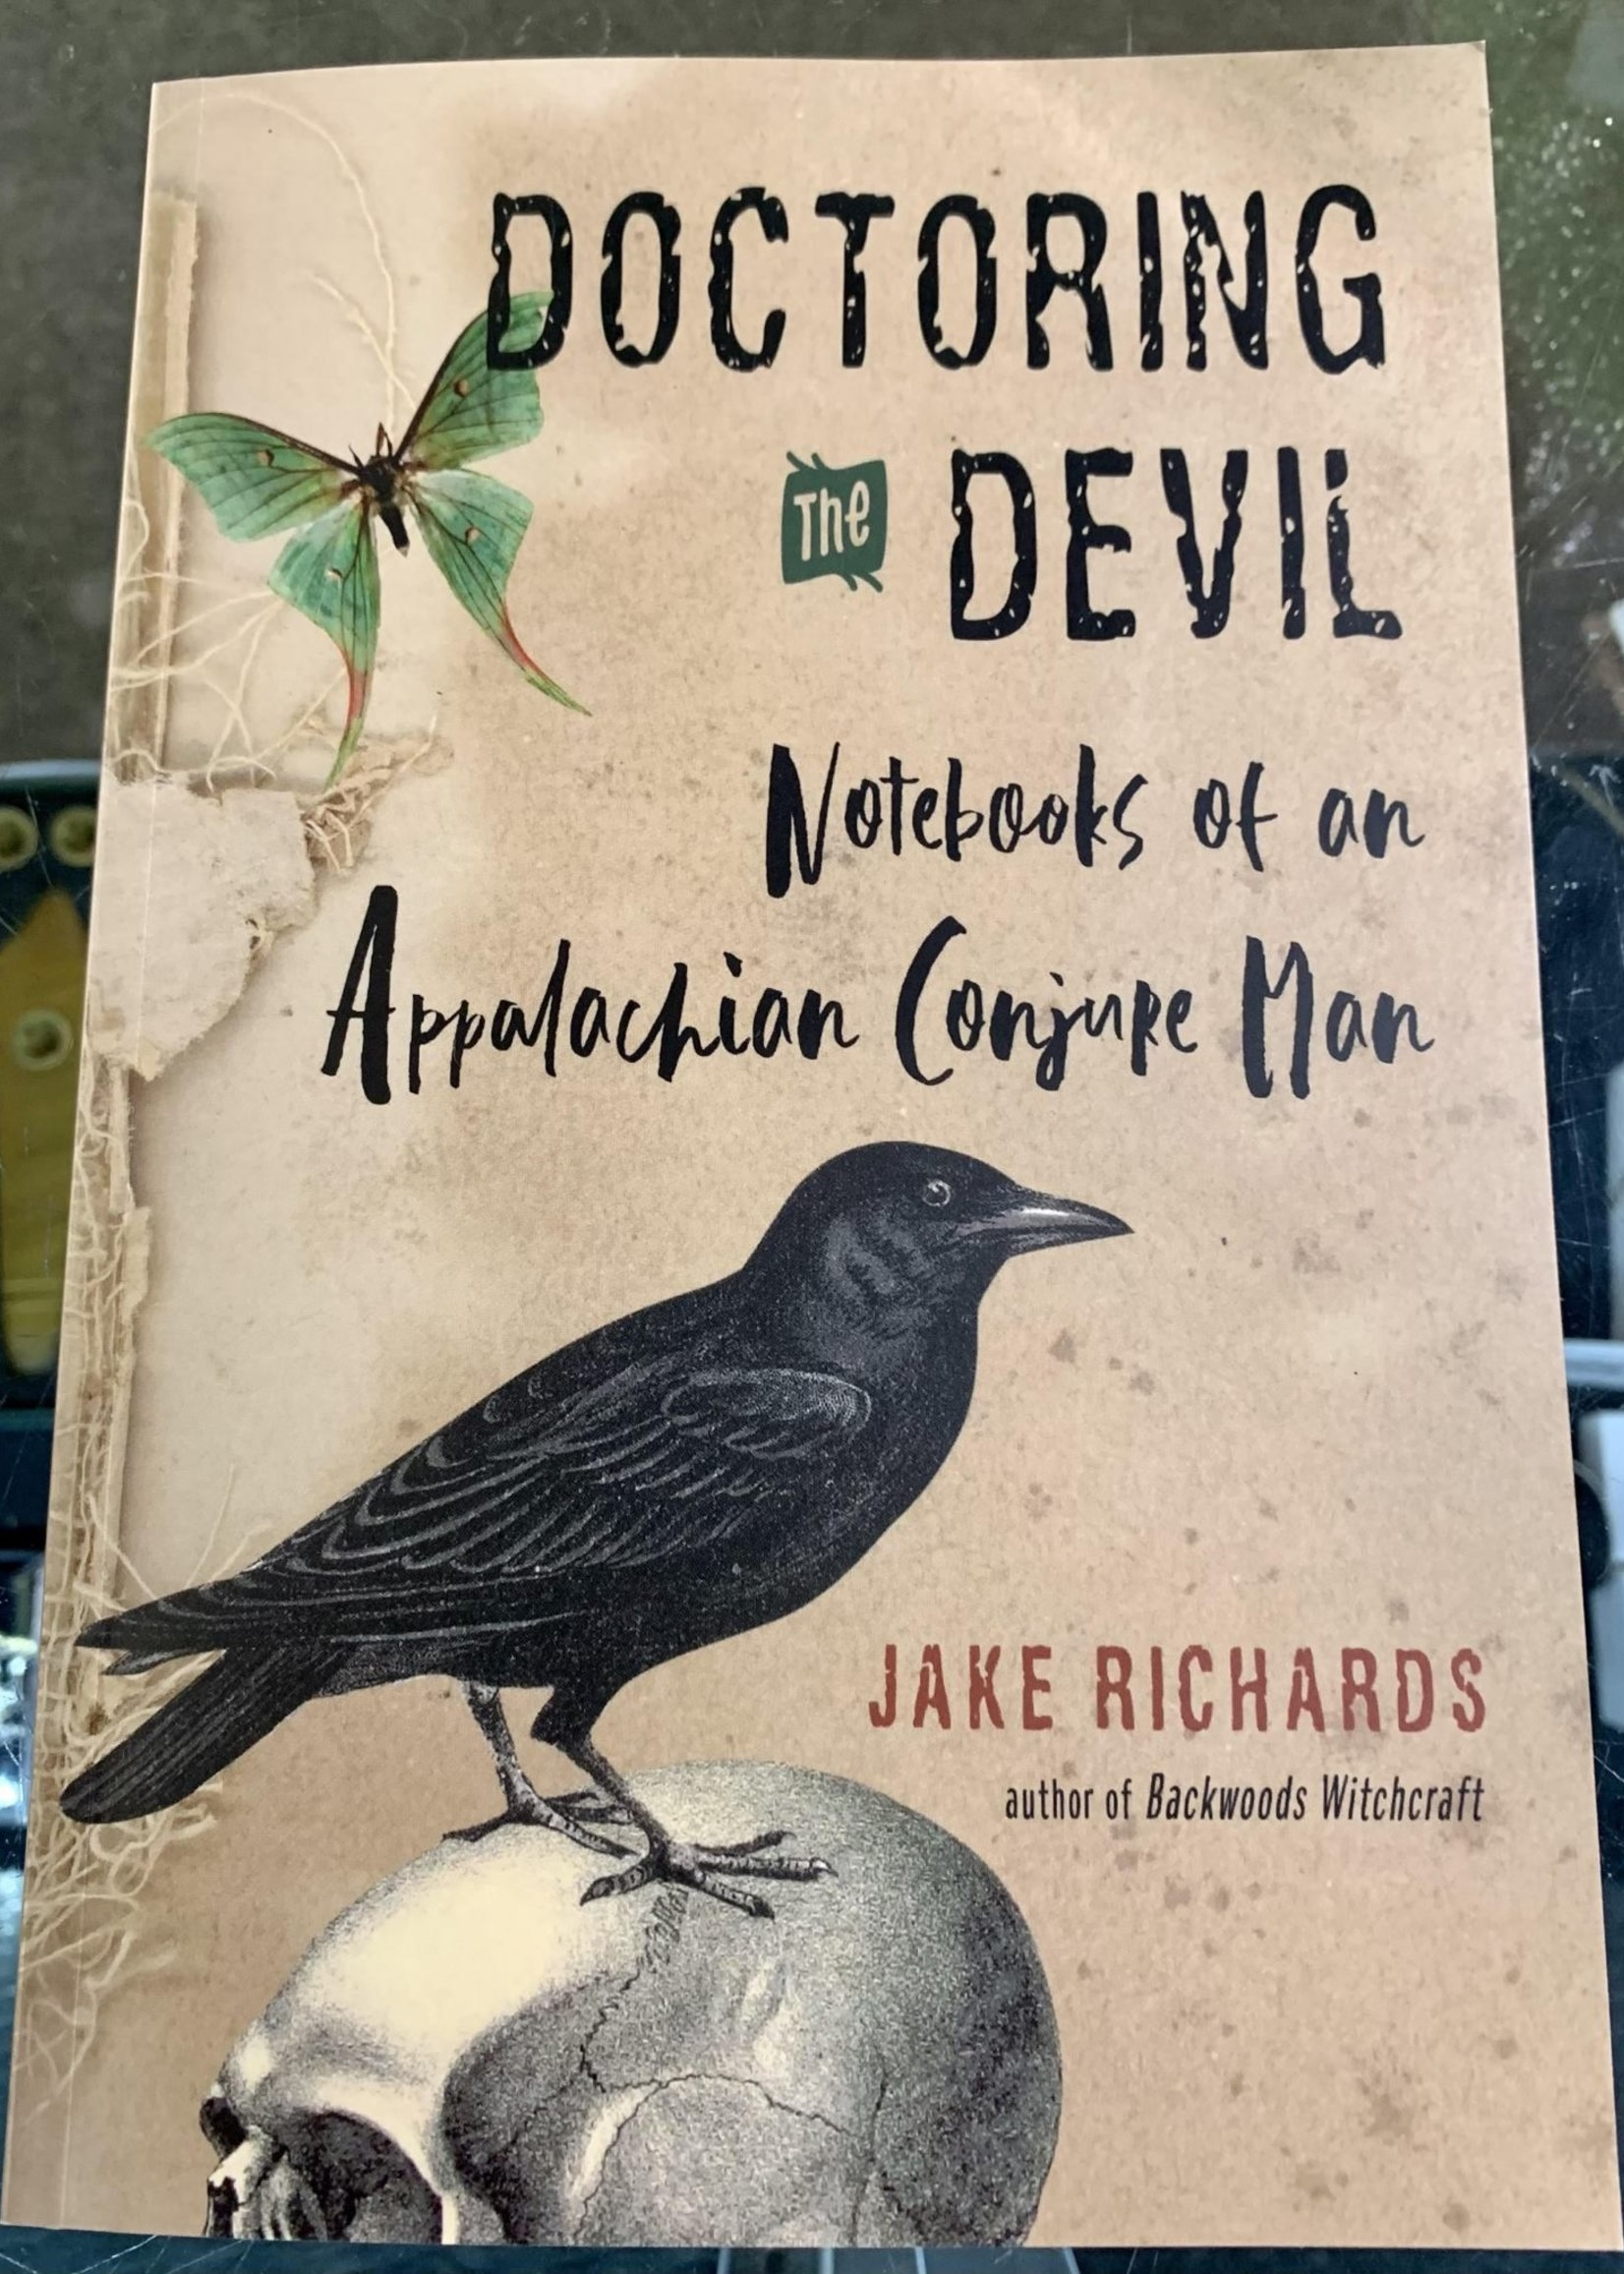 """Doctoring the Devil """"Notebooks of an Appalachian Conjure Man """" - Author Jake Richards"""